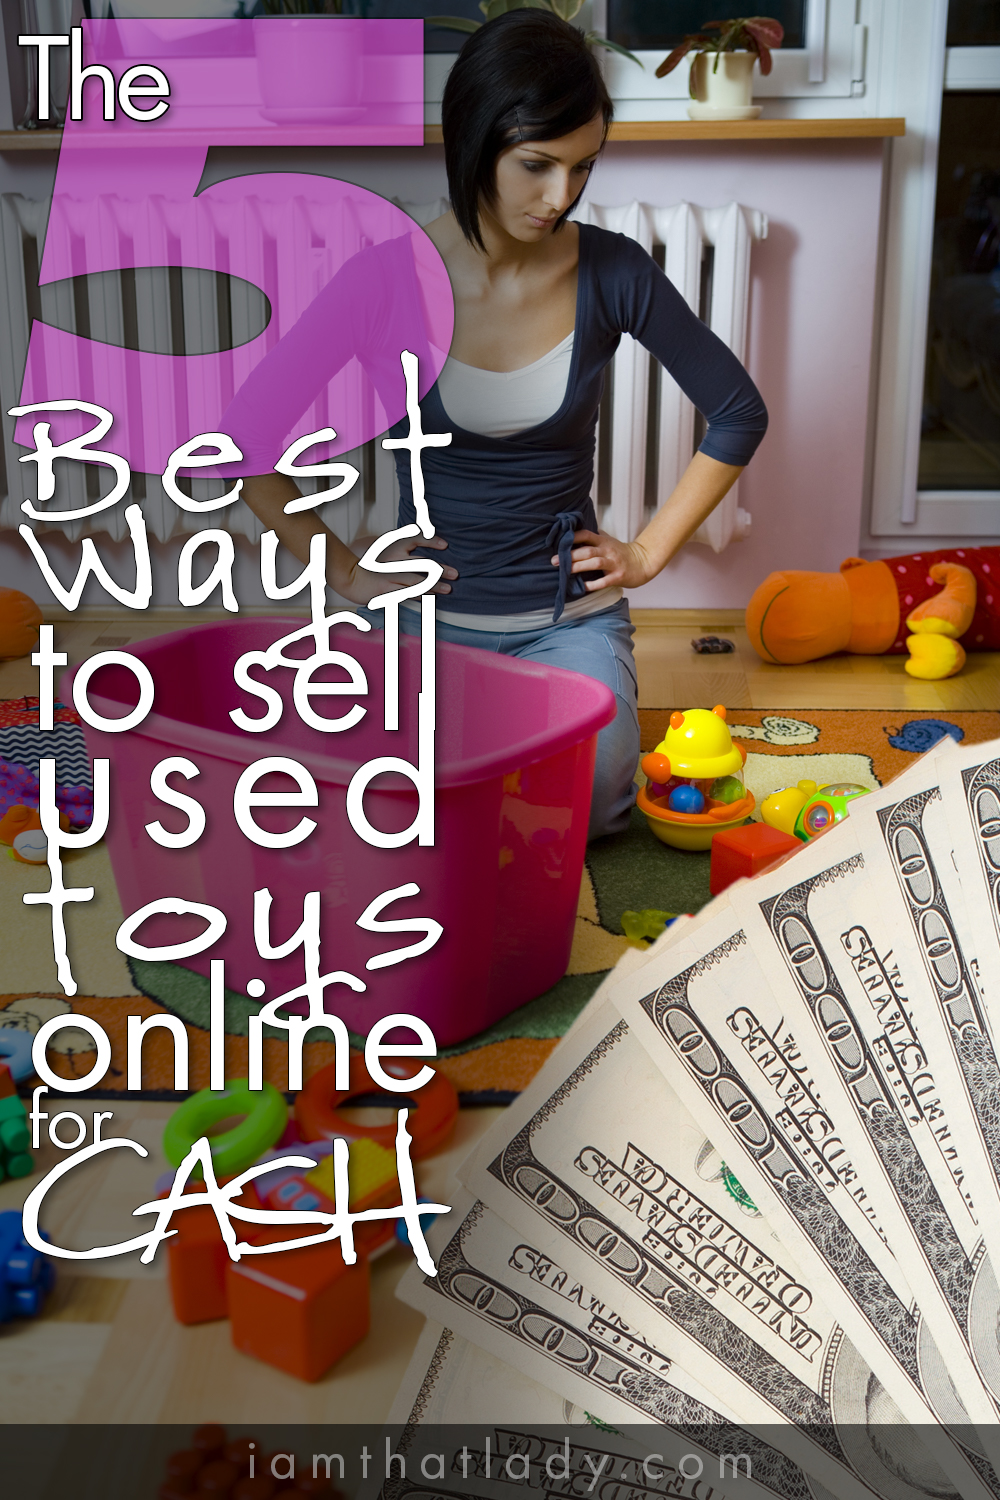 the 5 best ways to sell used toys online for cash